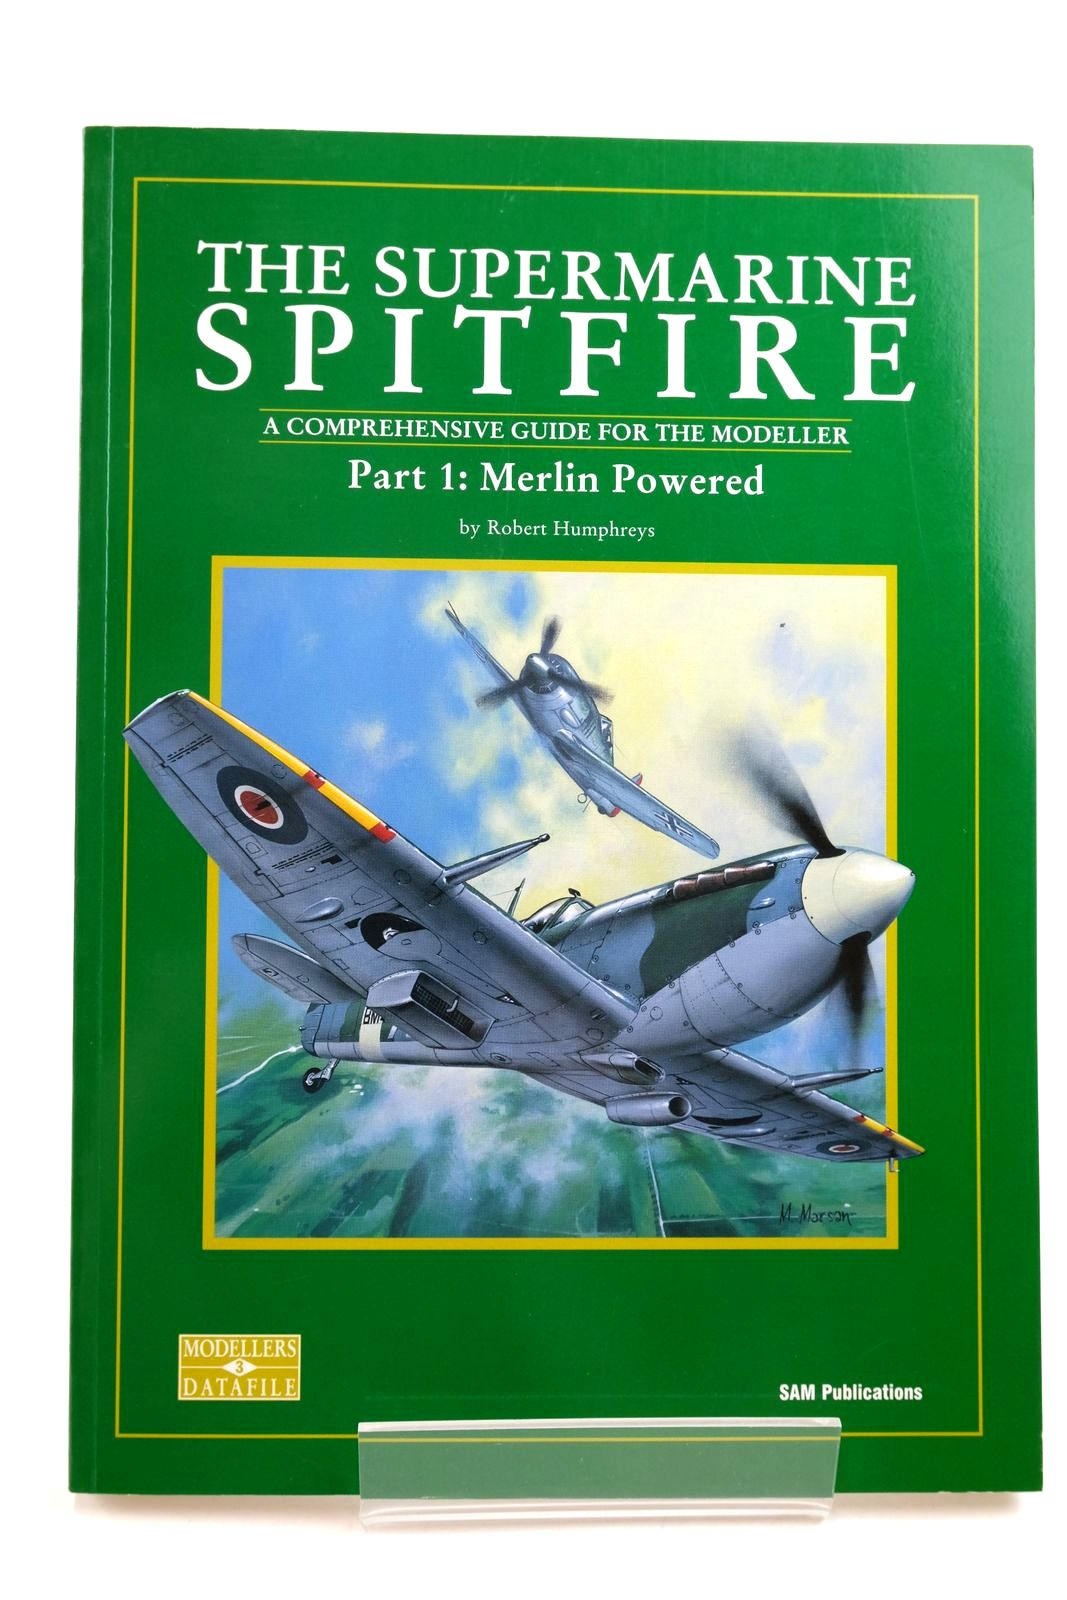 Photo of THE SUPERMARINE SPITFIRE: A COMPREHENSIVE GUIDE FOR THE MODELLER PART 1: MERLIN POWERED written by Humphreys, Robert published by Sam Publications (STOCK CODE: 2134486)  for sale by Stella & Rose's Books